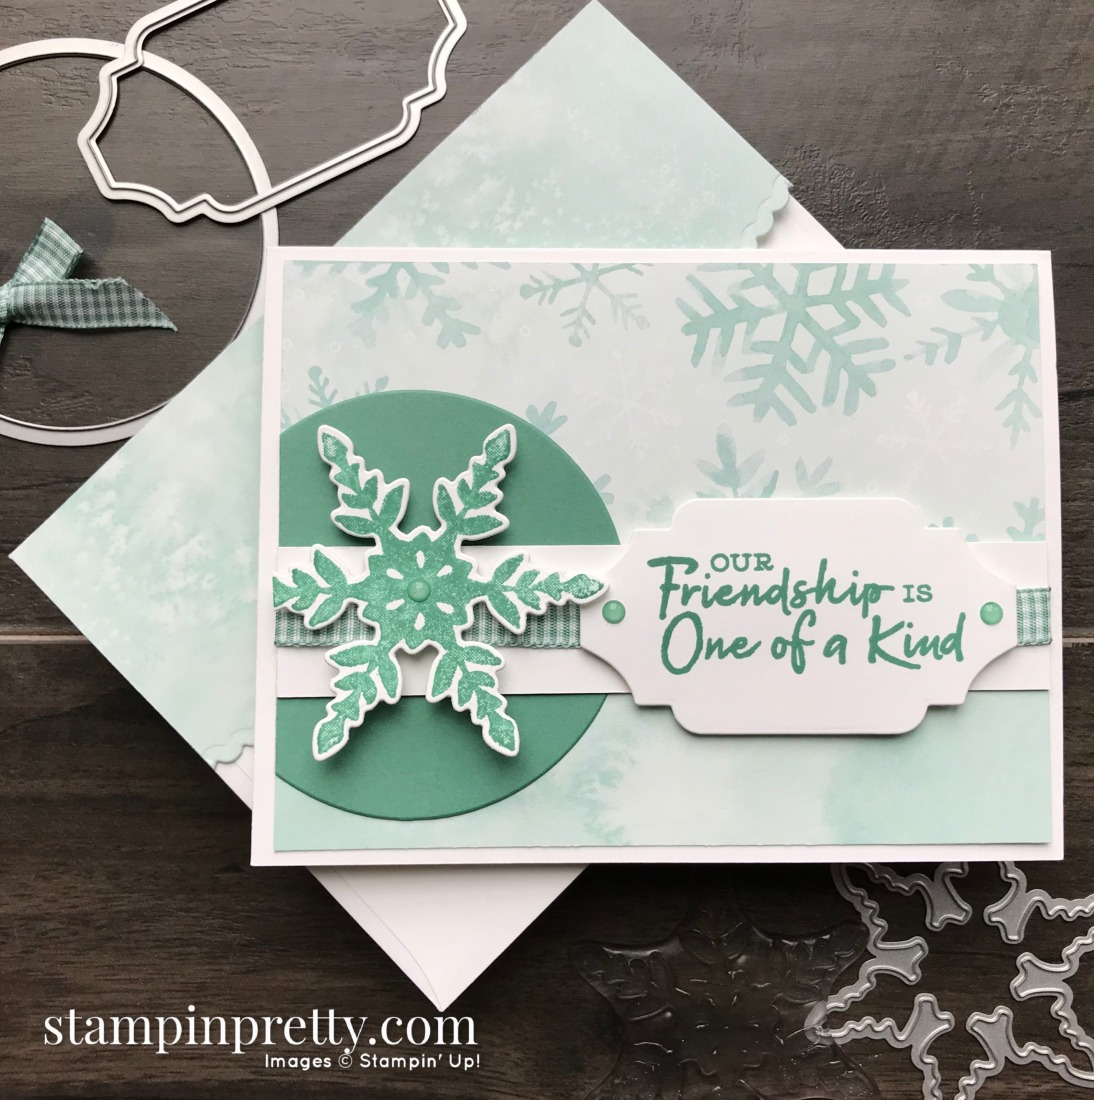 Friendship is One of a Kind with Snowflake Wishes Bundle by Stampin' Up! Card by Mary Fish, Stampin' Pretty